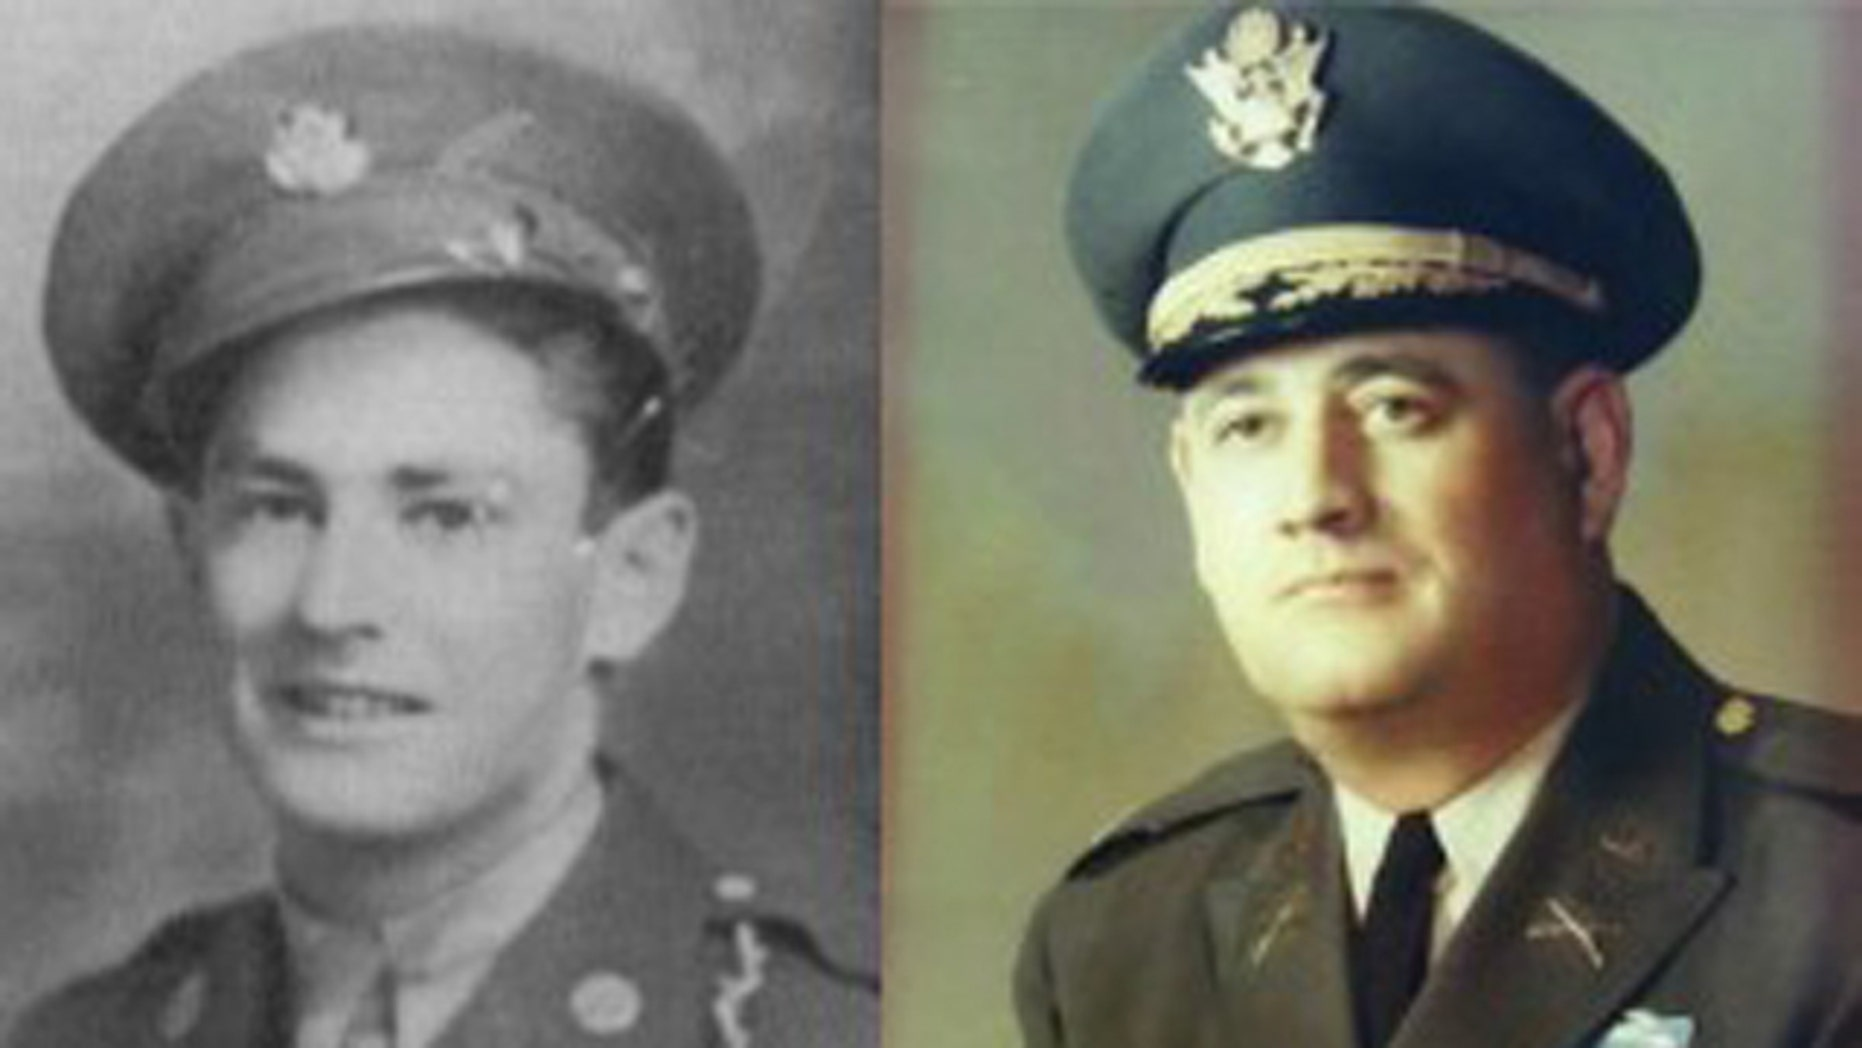 These images, obtained by the Helena Independent Record, show Joe Glass, left, and Mark Radcliffe, right, members of the First Special Service Force during World War II. The two died Sunday just hours apart from each other.